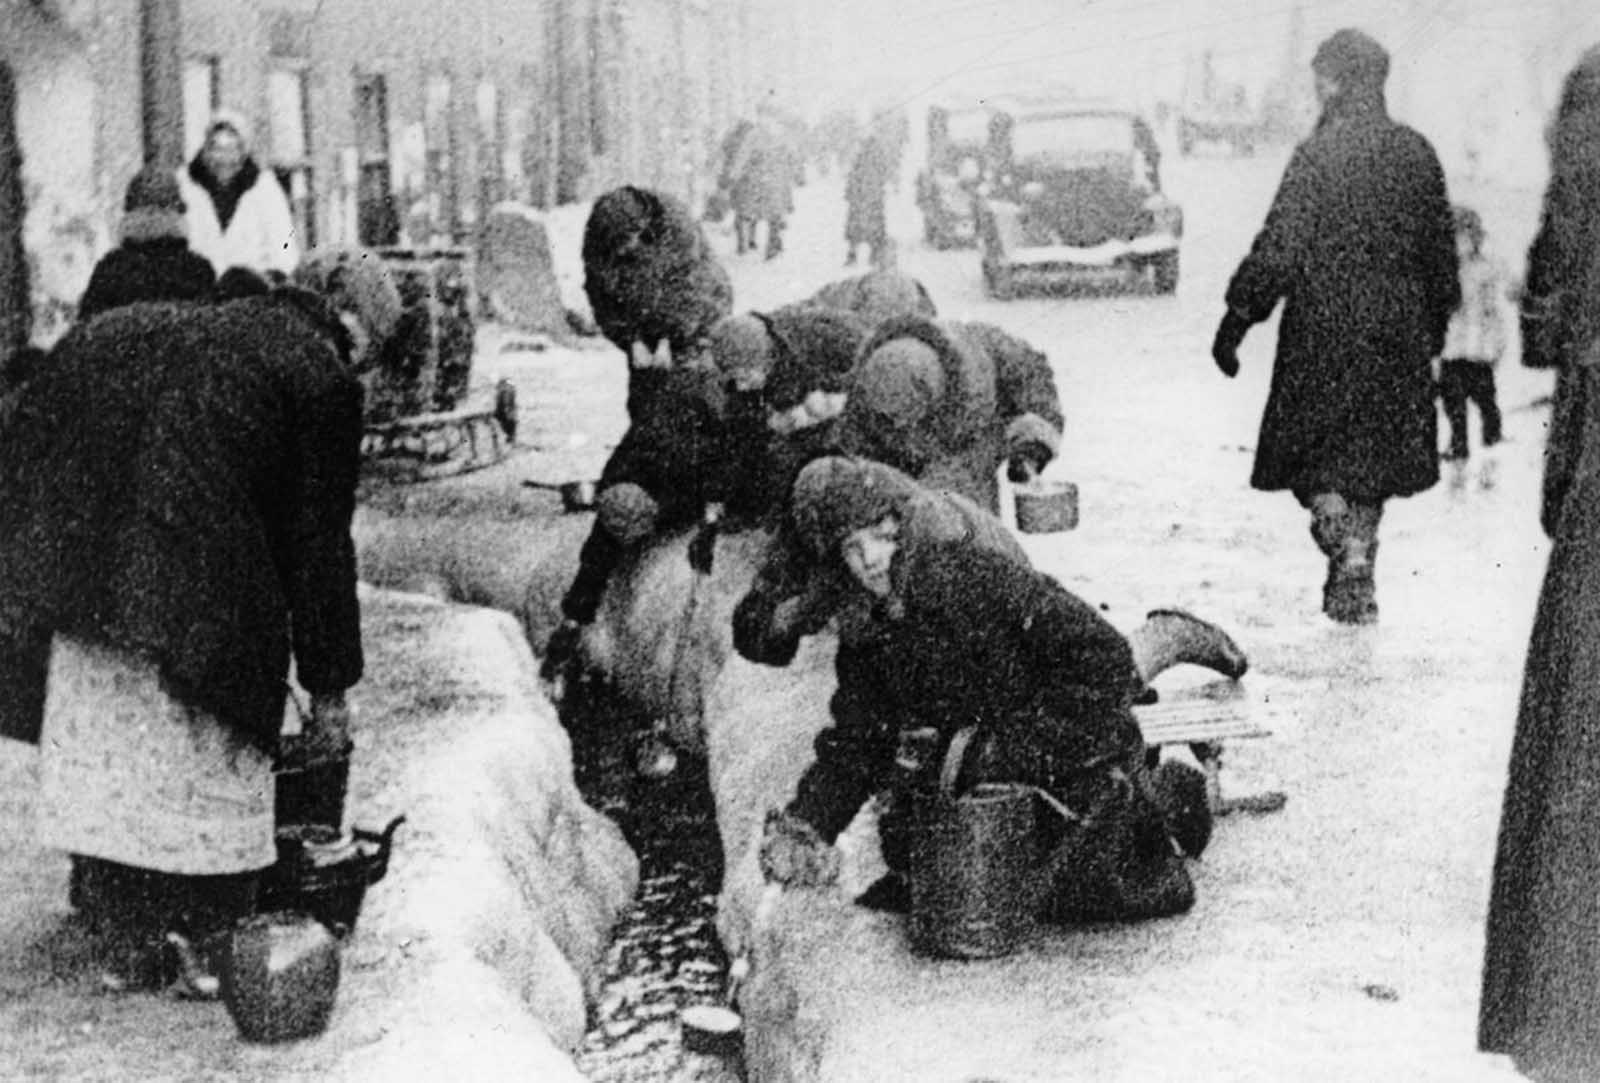 This photo, taken in the winter months of 1942, shows citizens of Leningrad as they dip for water from a broken main, during the nearly 900-day siege of the Russian city by German invaders. Unable to capture the Leningrad (today known as Saint Petersburg), the Germans cut it off from the world, disrupting utilities and shelling the city heavily for more than two years.